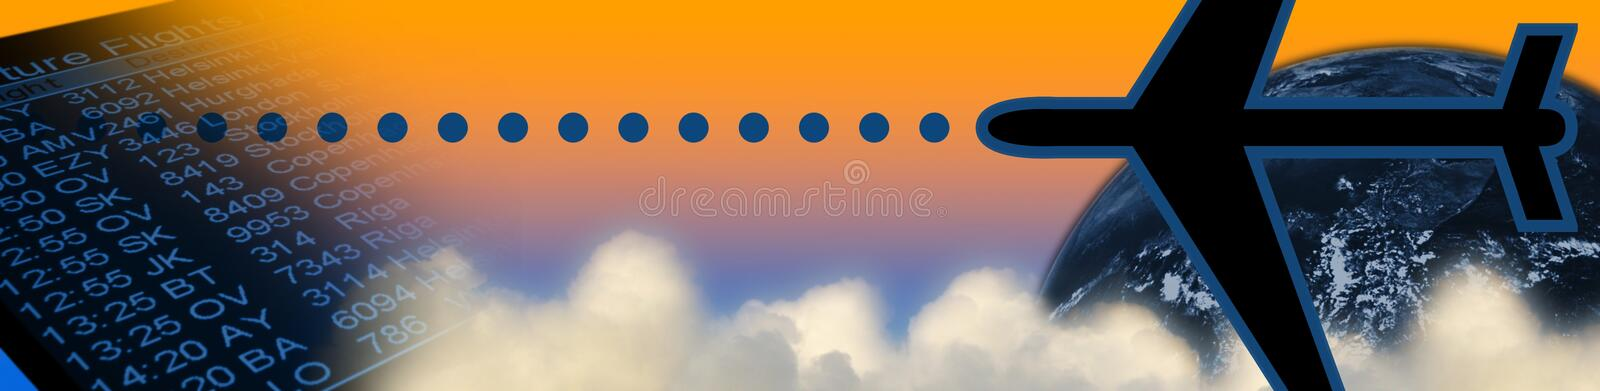 Travel header: orange. Business header: airport timetable, clouds, airplane, earth (NASA image